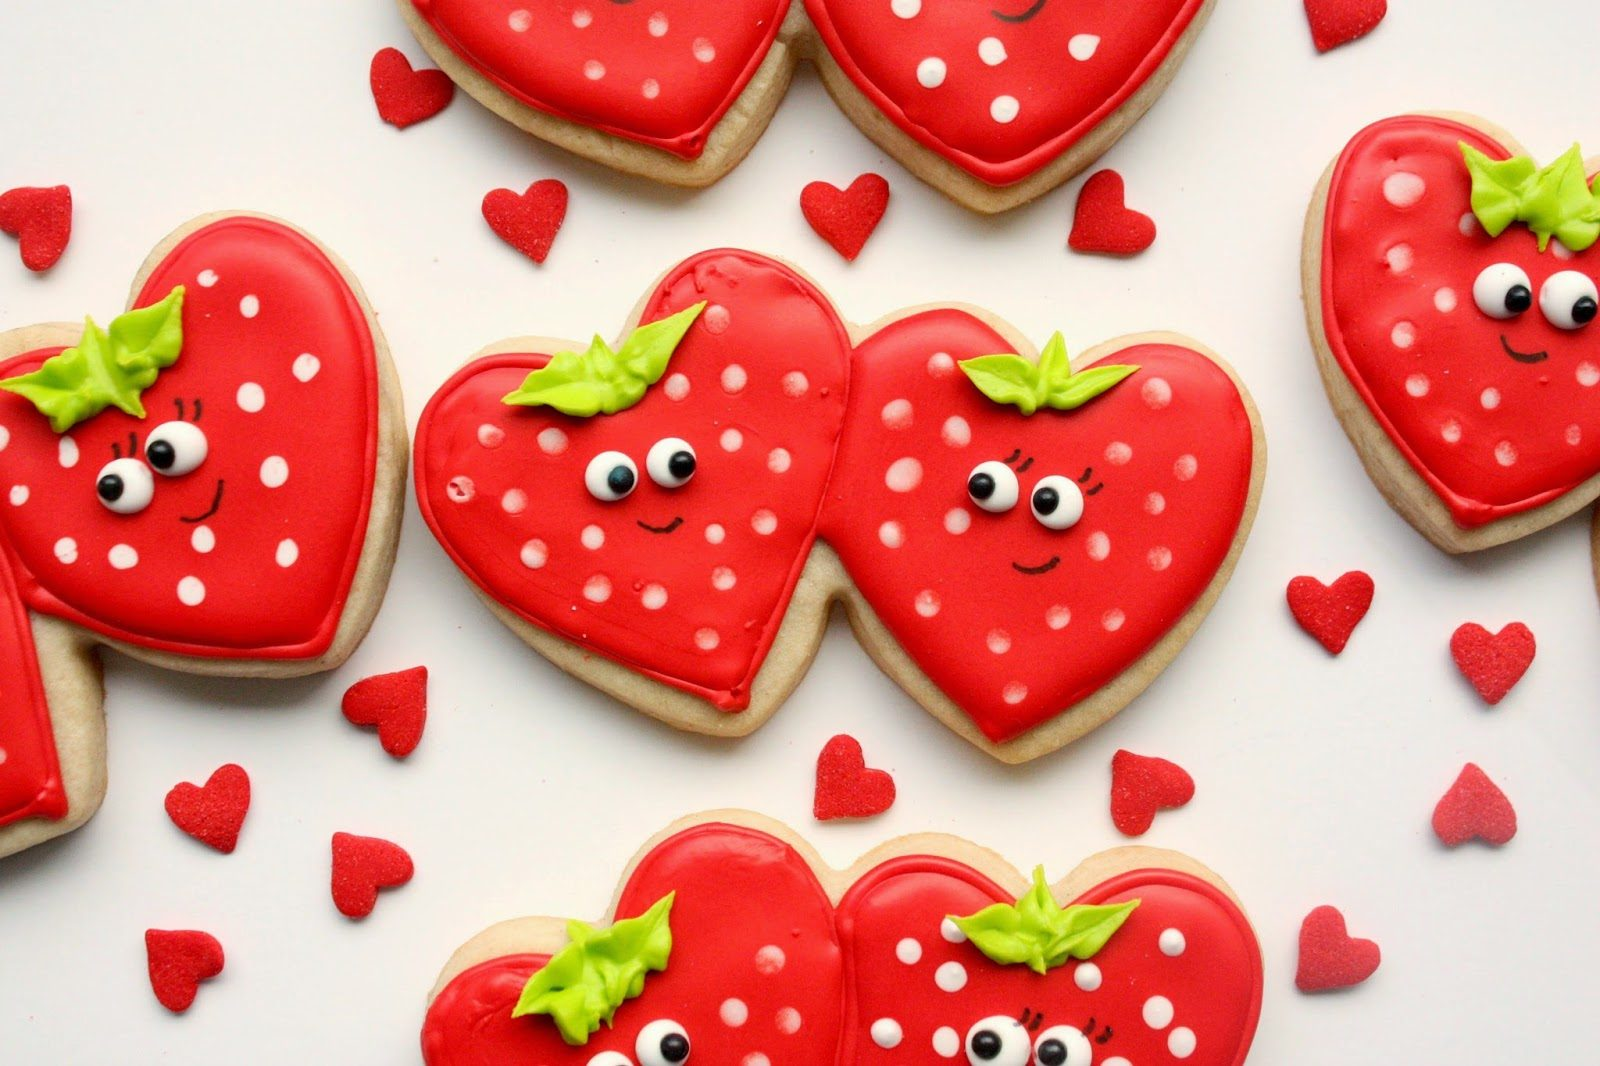 Strawberry Sweetheart Cookies, Lay The Table